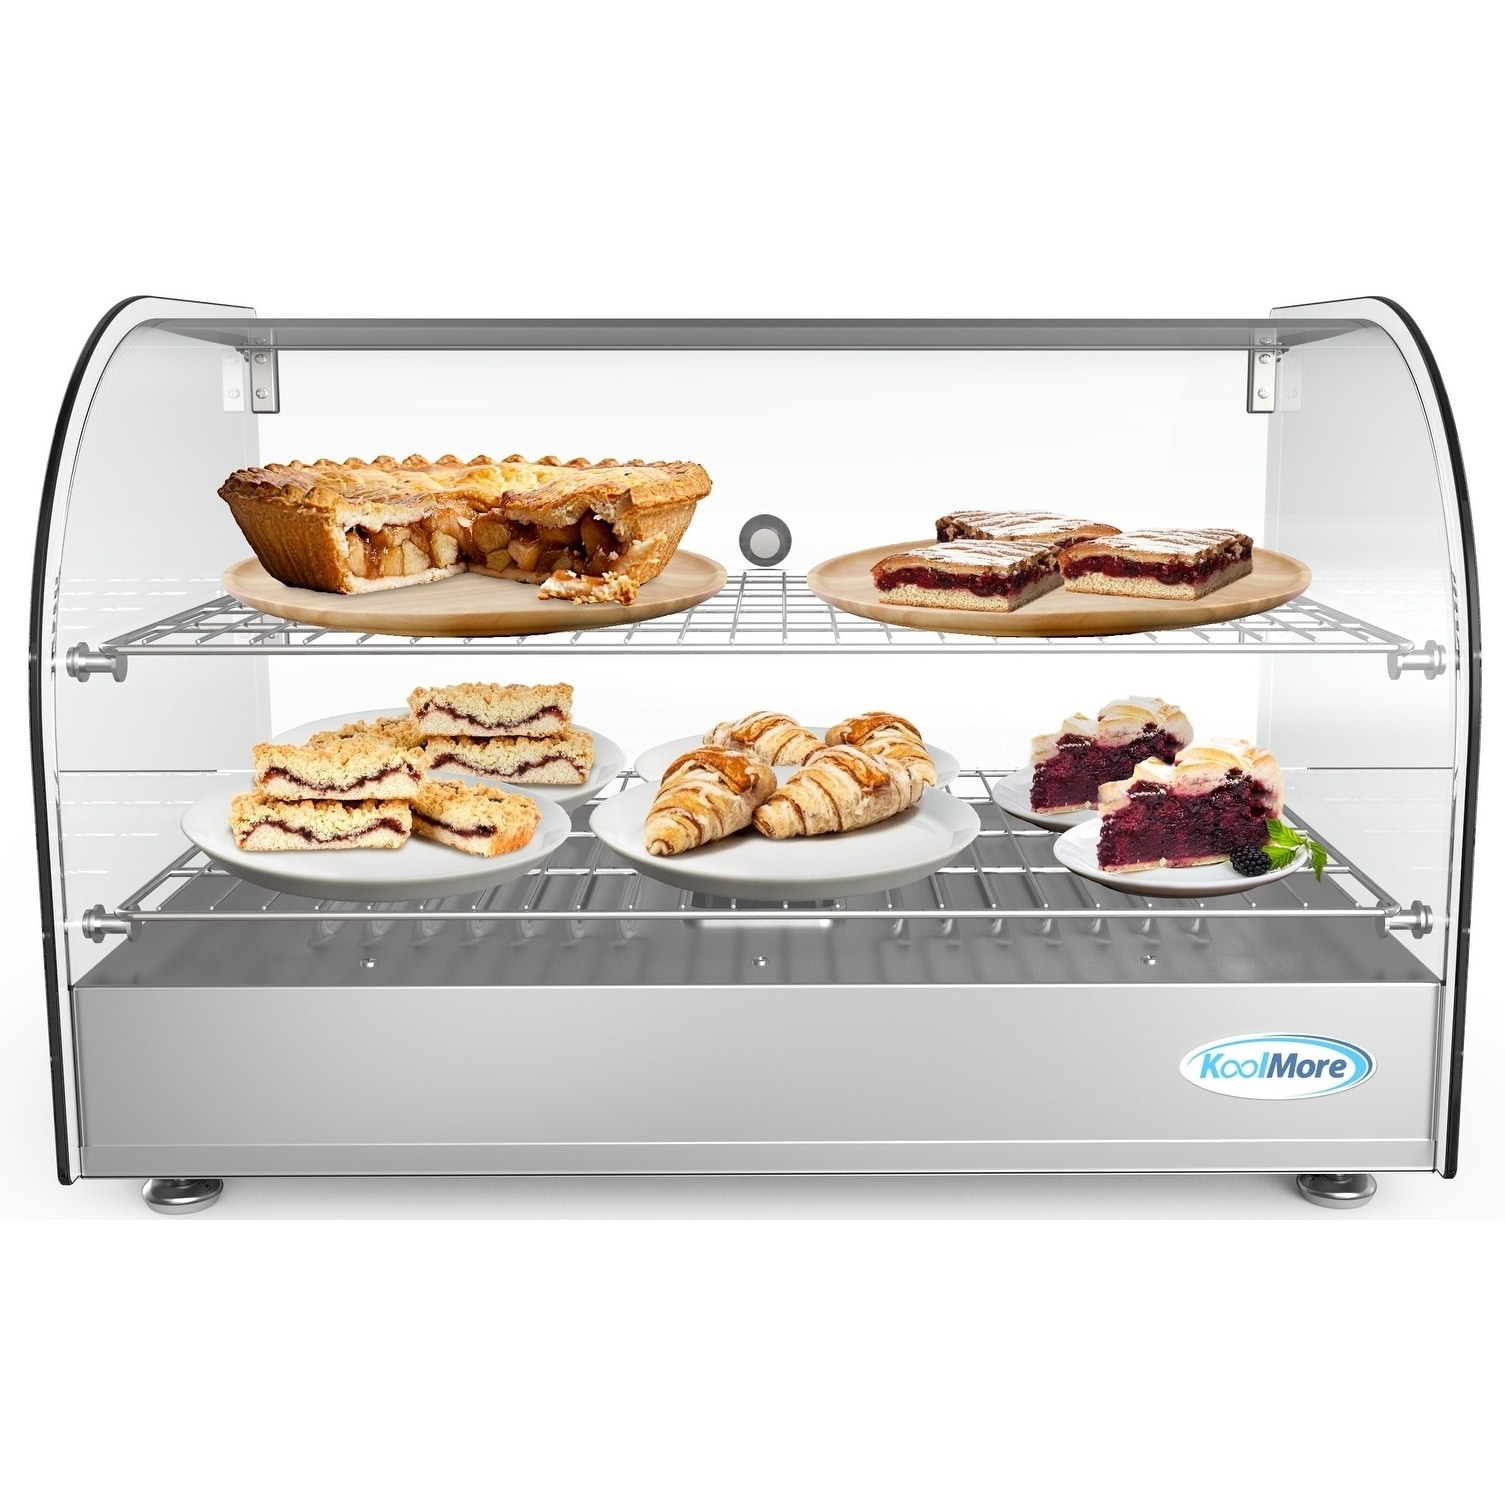 Countertop Food Display Case 22 Inch Commercial Countertop Food Warmer Display Case Merchandiser 1 5 Cu Ft N A